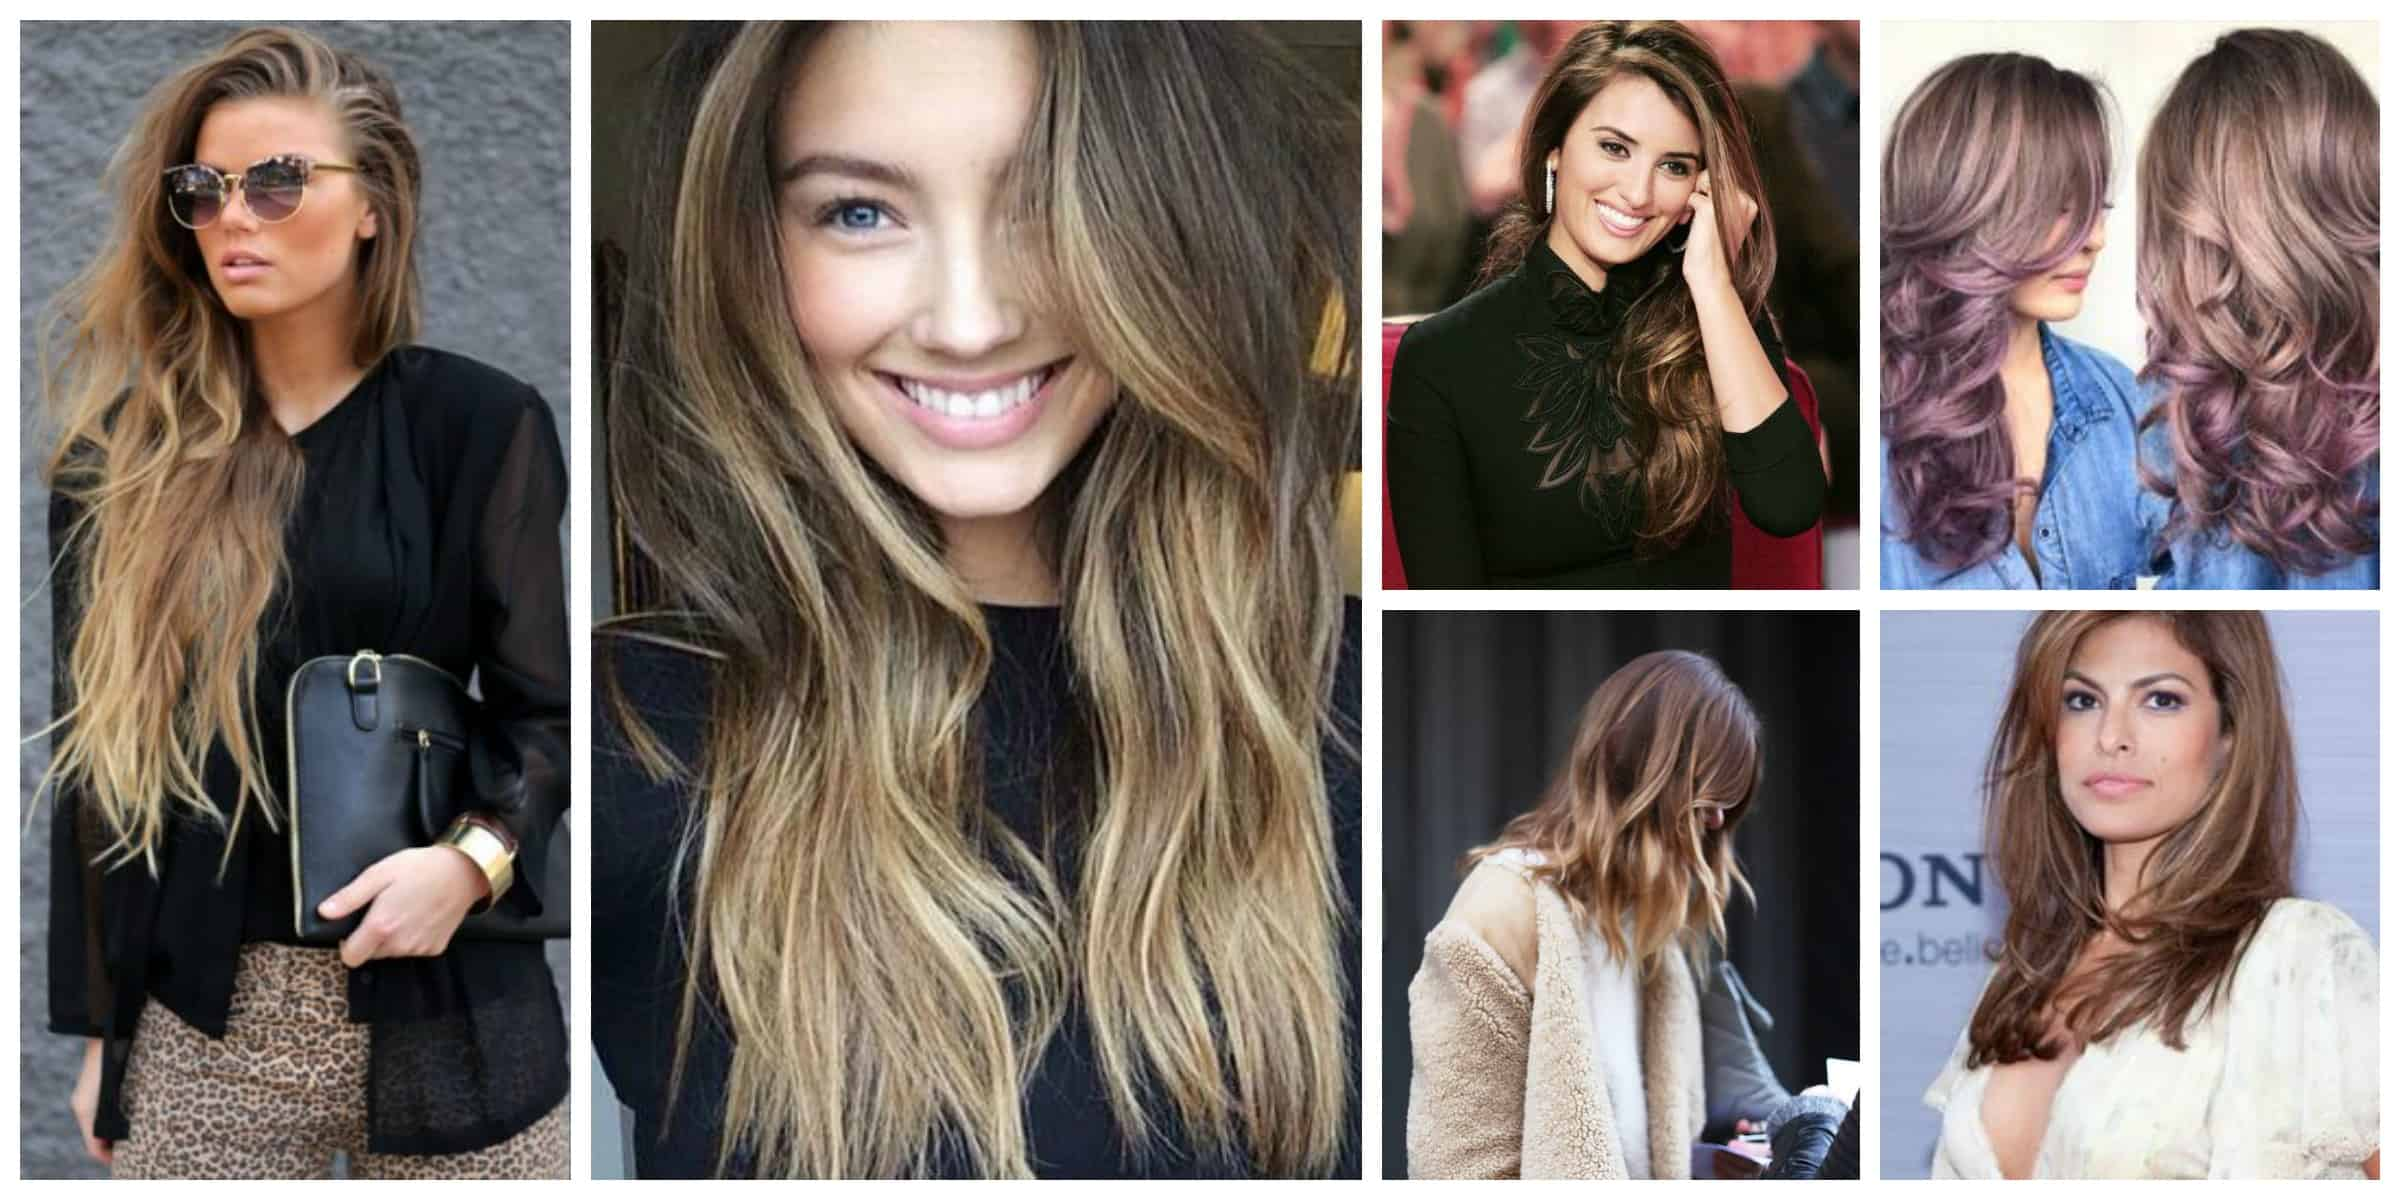 Fashion trend predictions 2017 - 2017 Hair Color Trends Balayage Genesis Nvibe